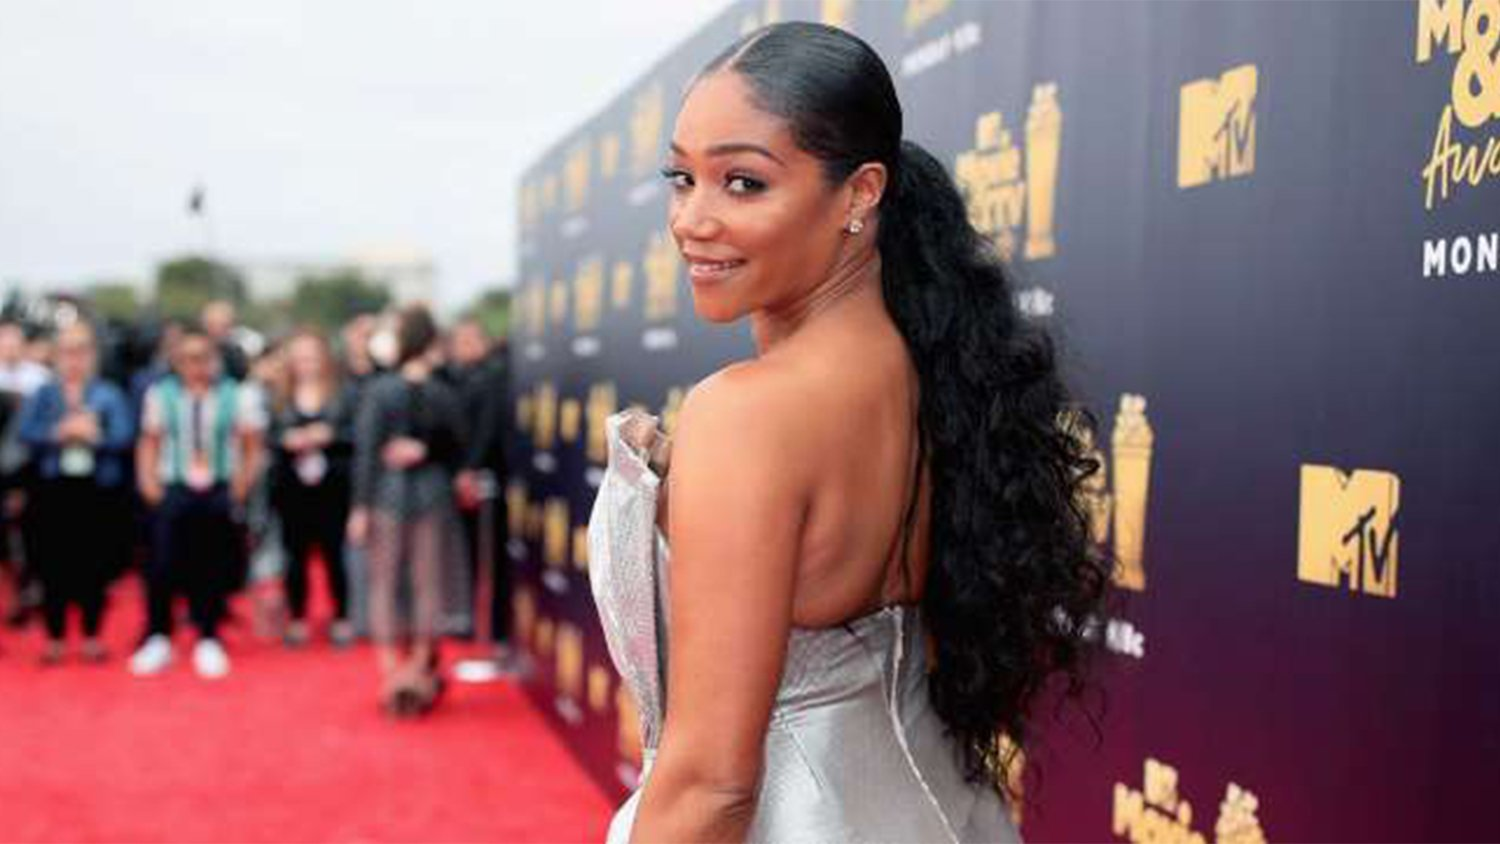 Tiffany Haddish Has Dropped 40 Pounds Amid The Pandemic – Here's Her Secret!